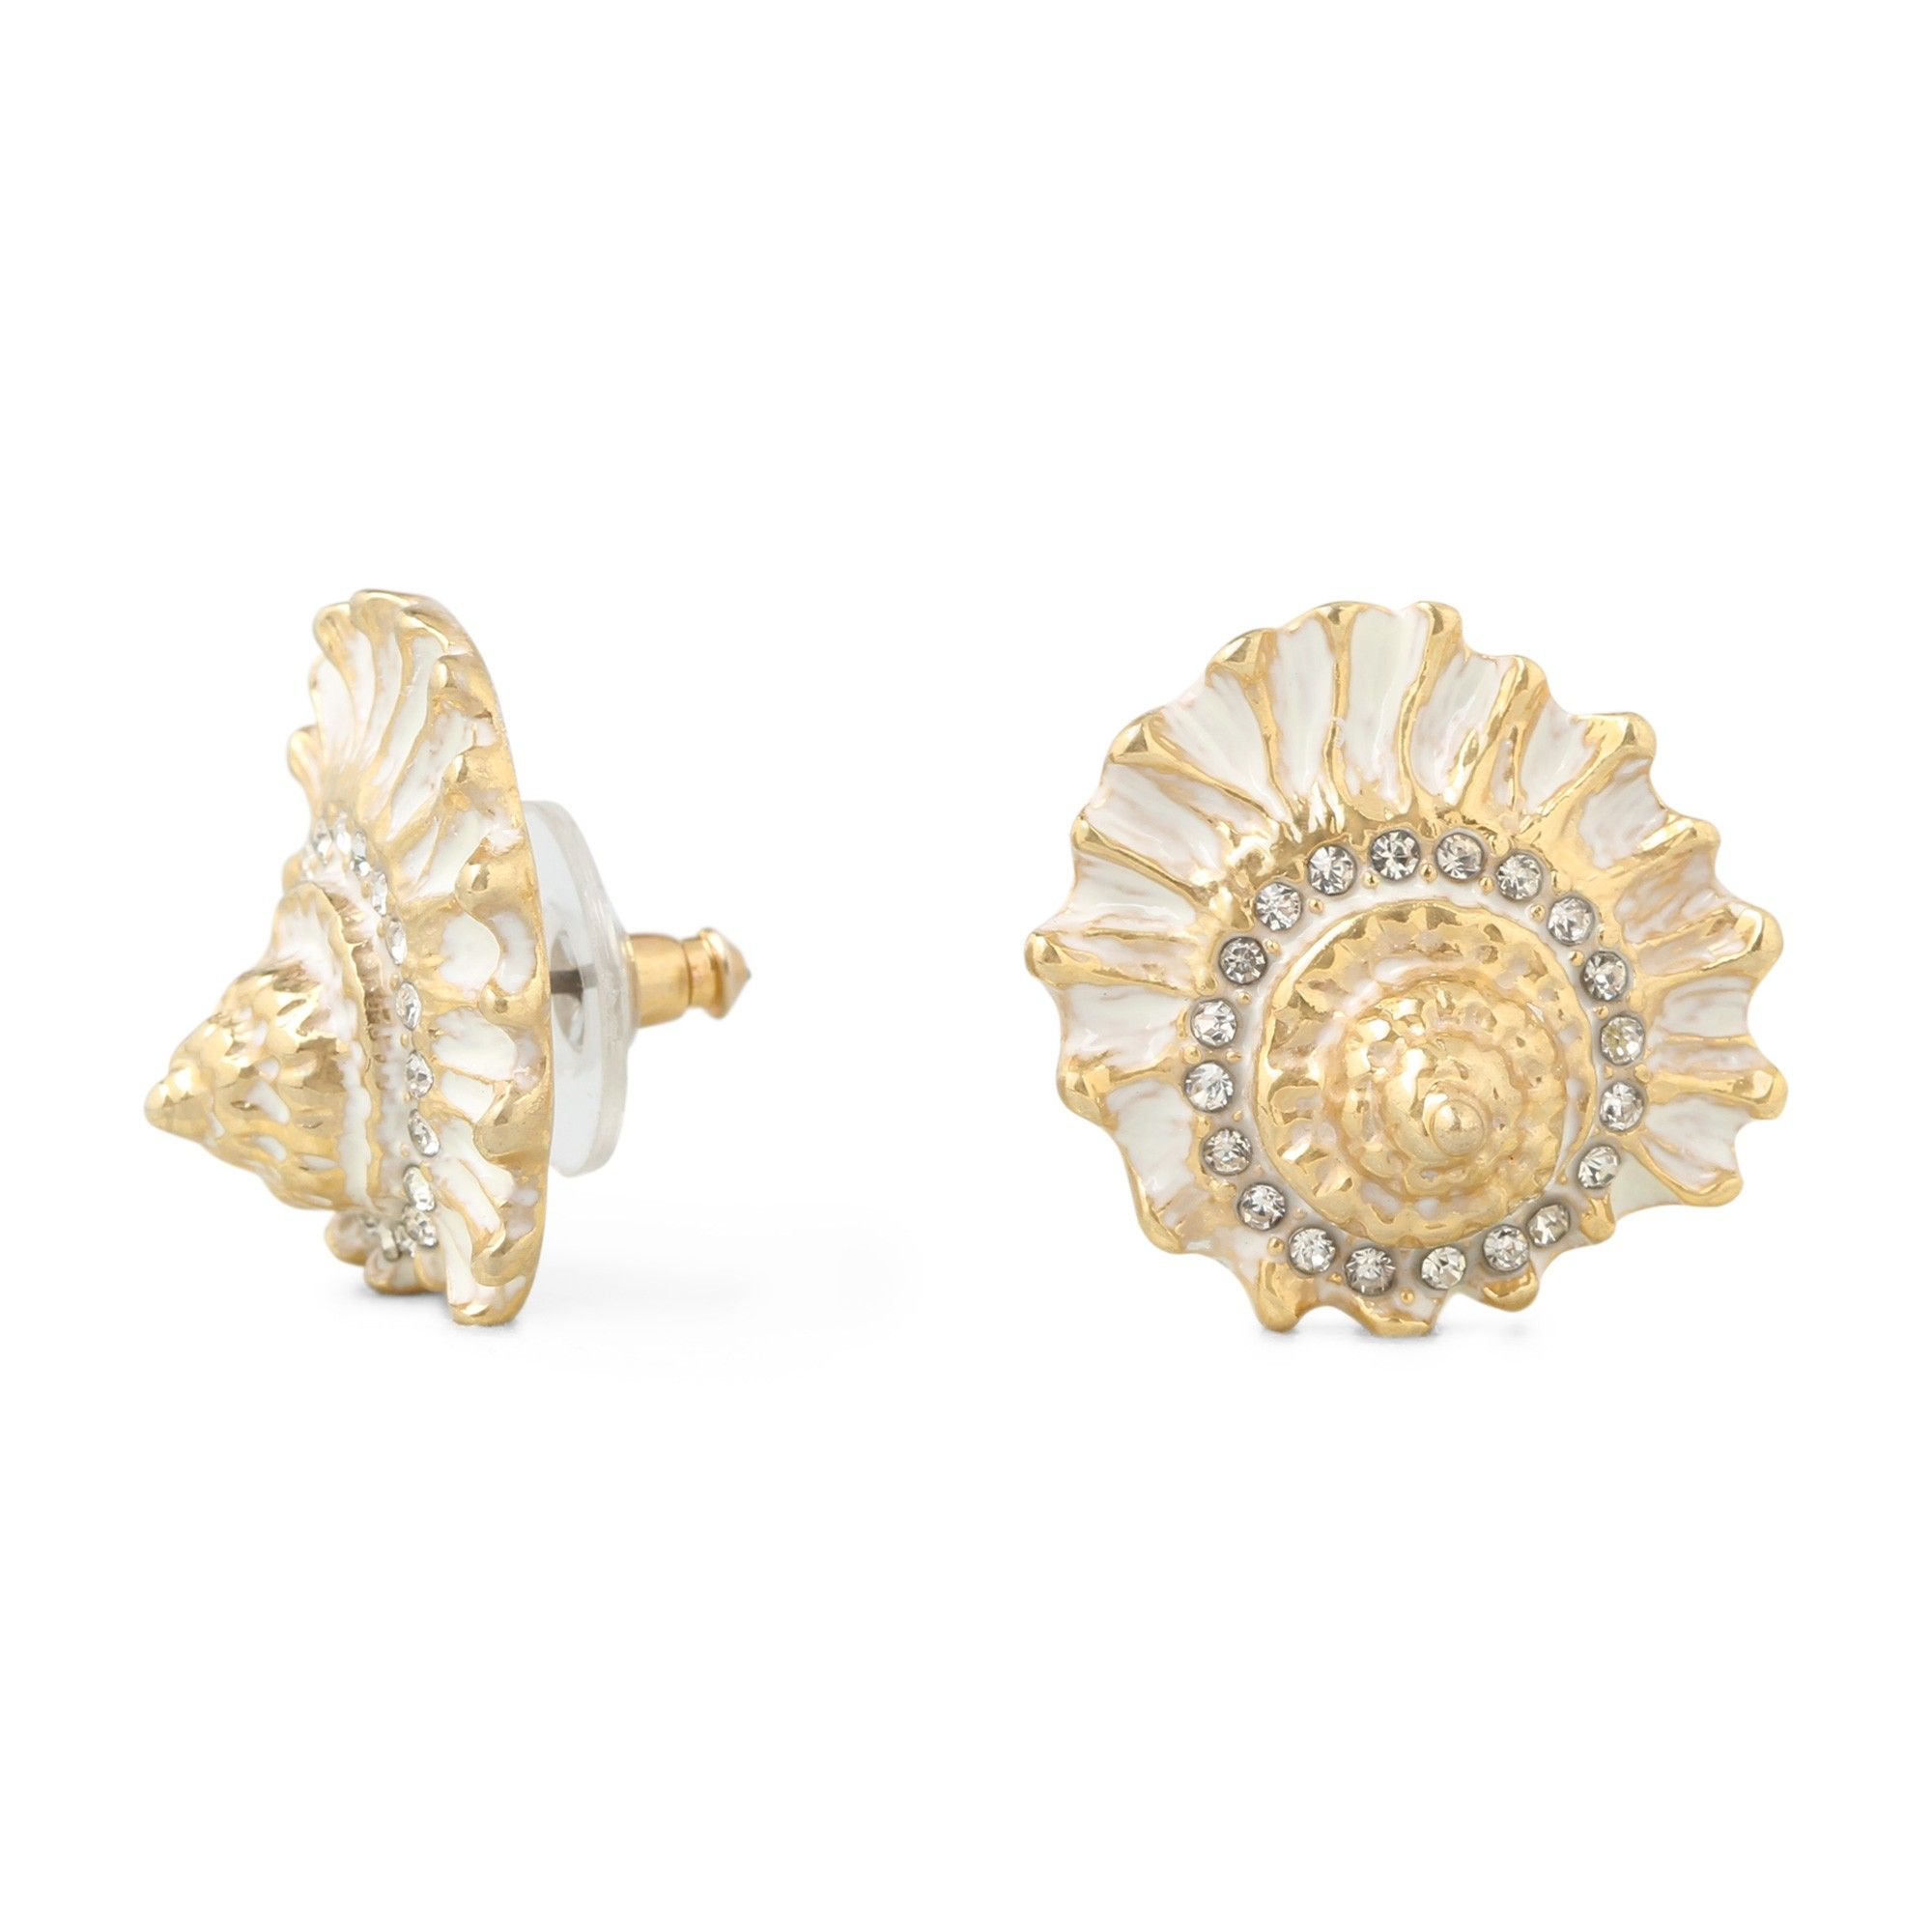 studs jewelry dollar earrings bling silver seashell sand nautical starfish stud pfs